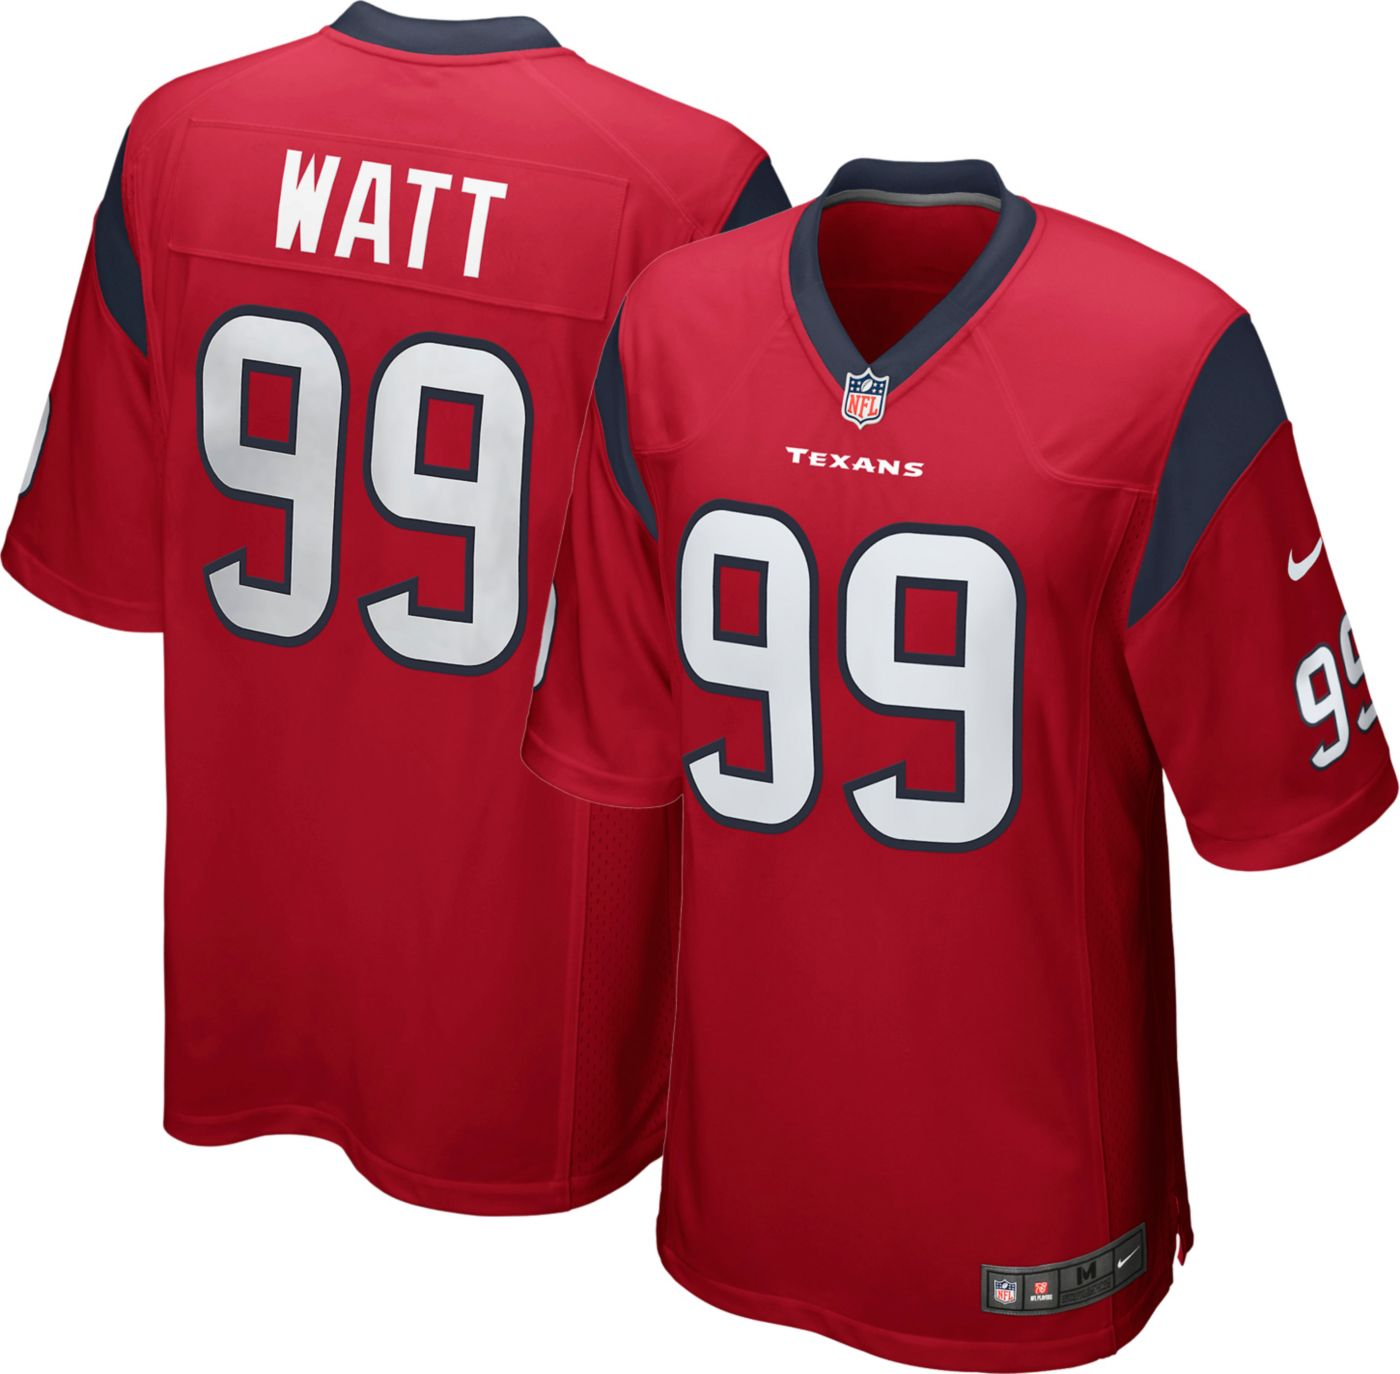 Nike Youth Alternate Game Jersey Houston Texans J.J. Watt #99